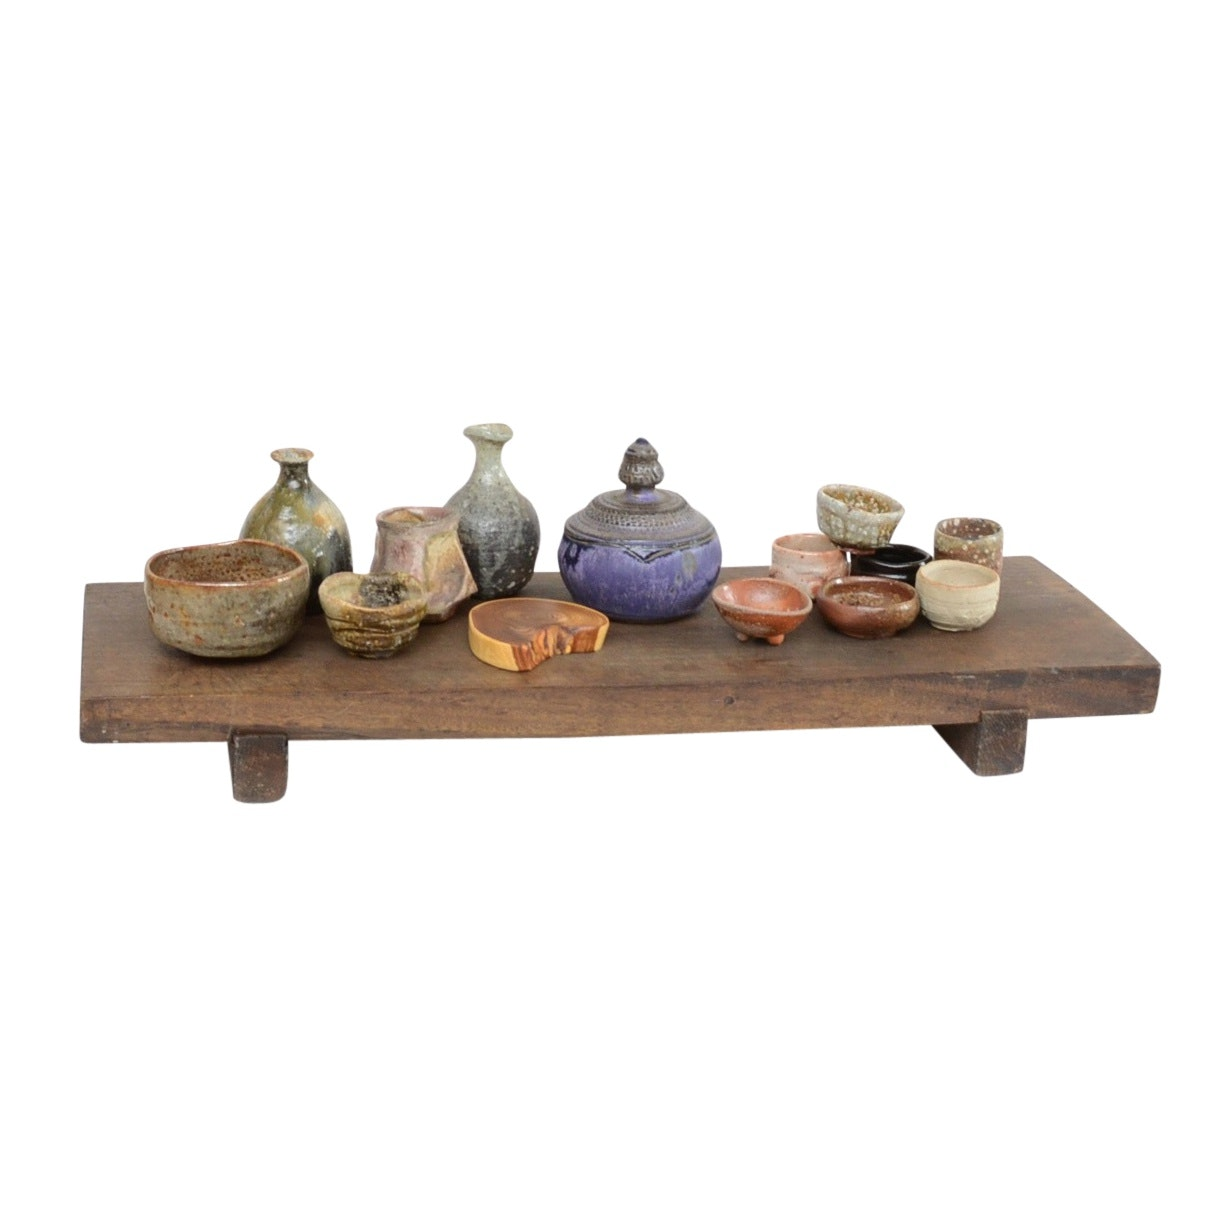 Stoneware Tea and Sake Bowls with Wooden Plank Serving Tray